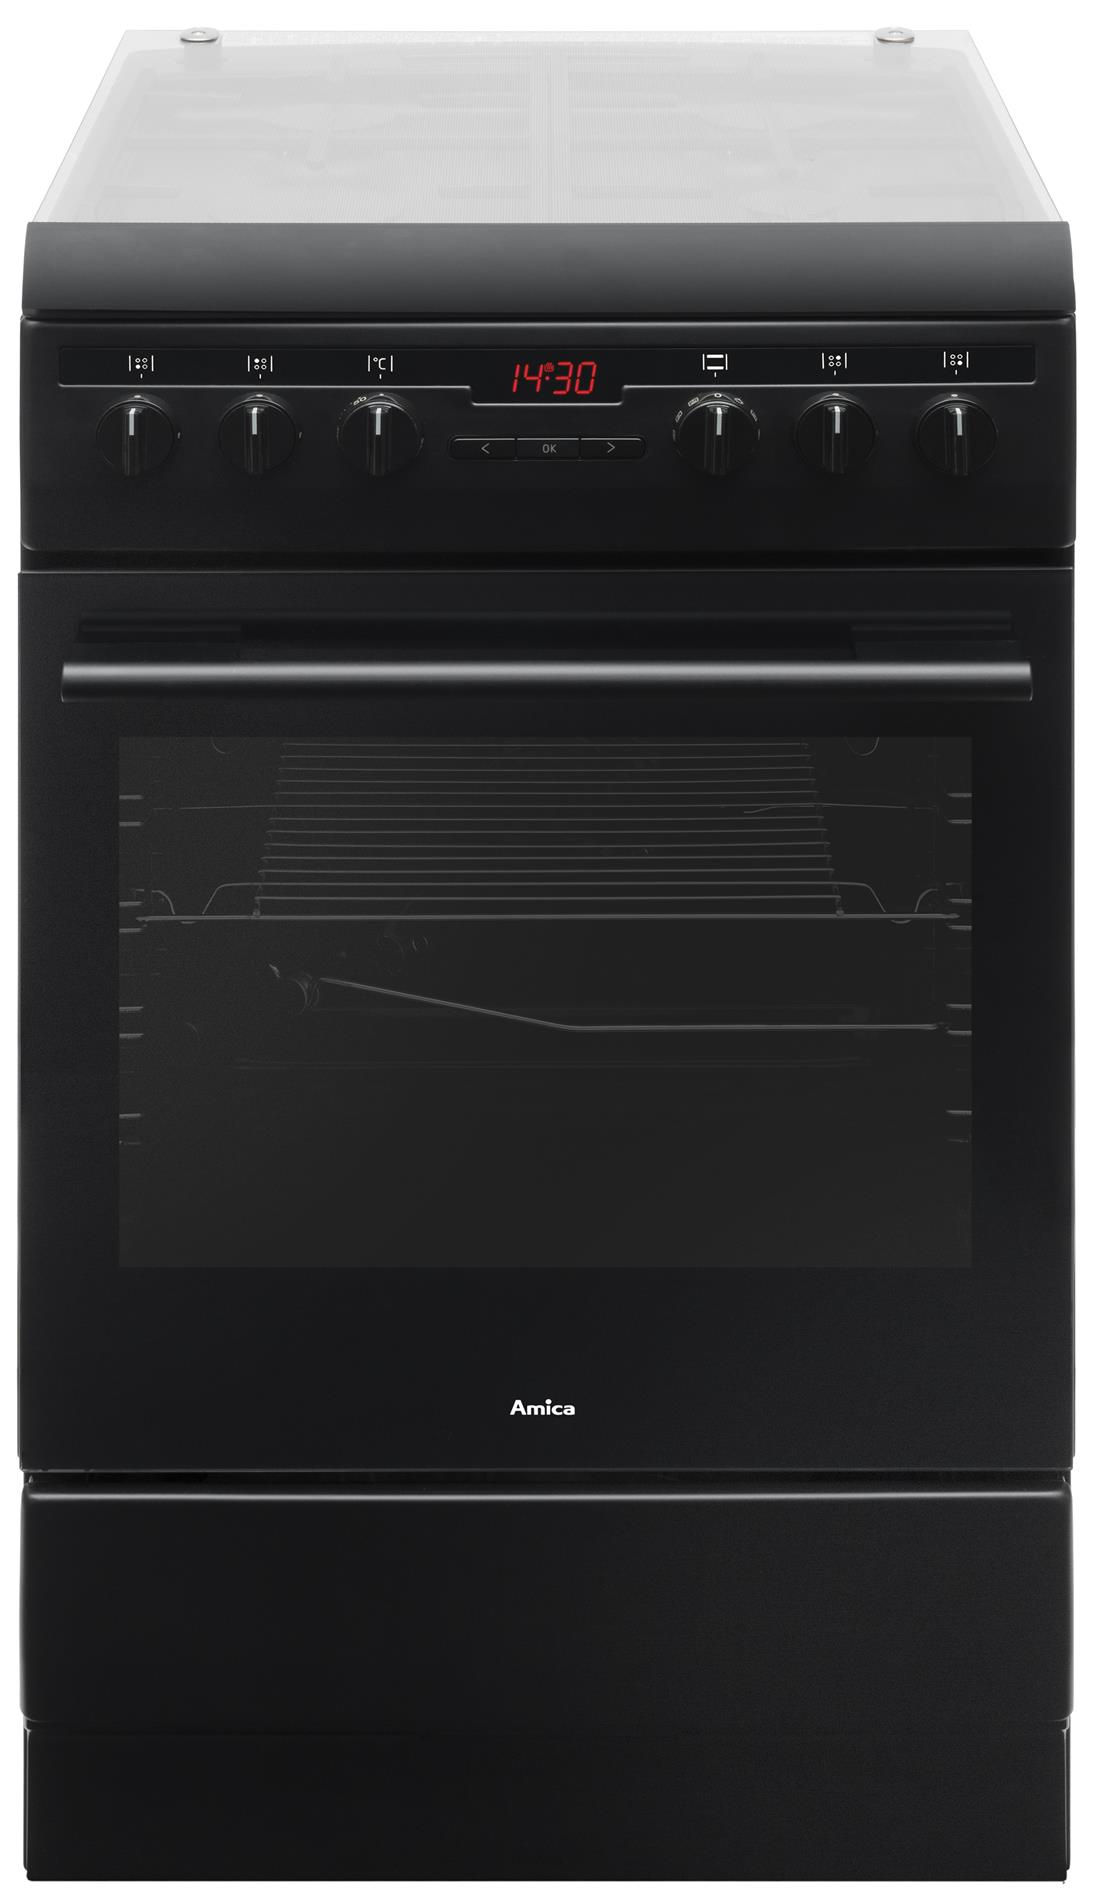 Free standing gas electric cooker 57GES3 43HZpTaDNA(Bm